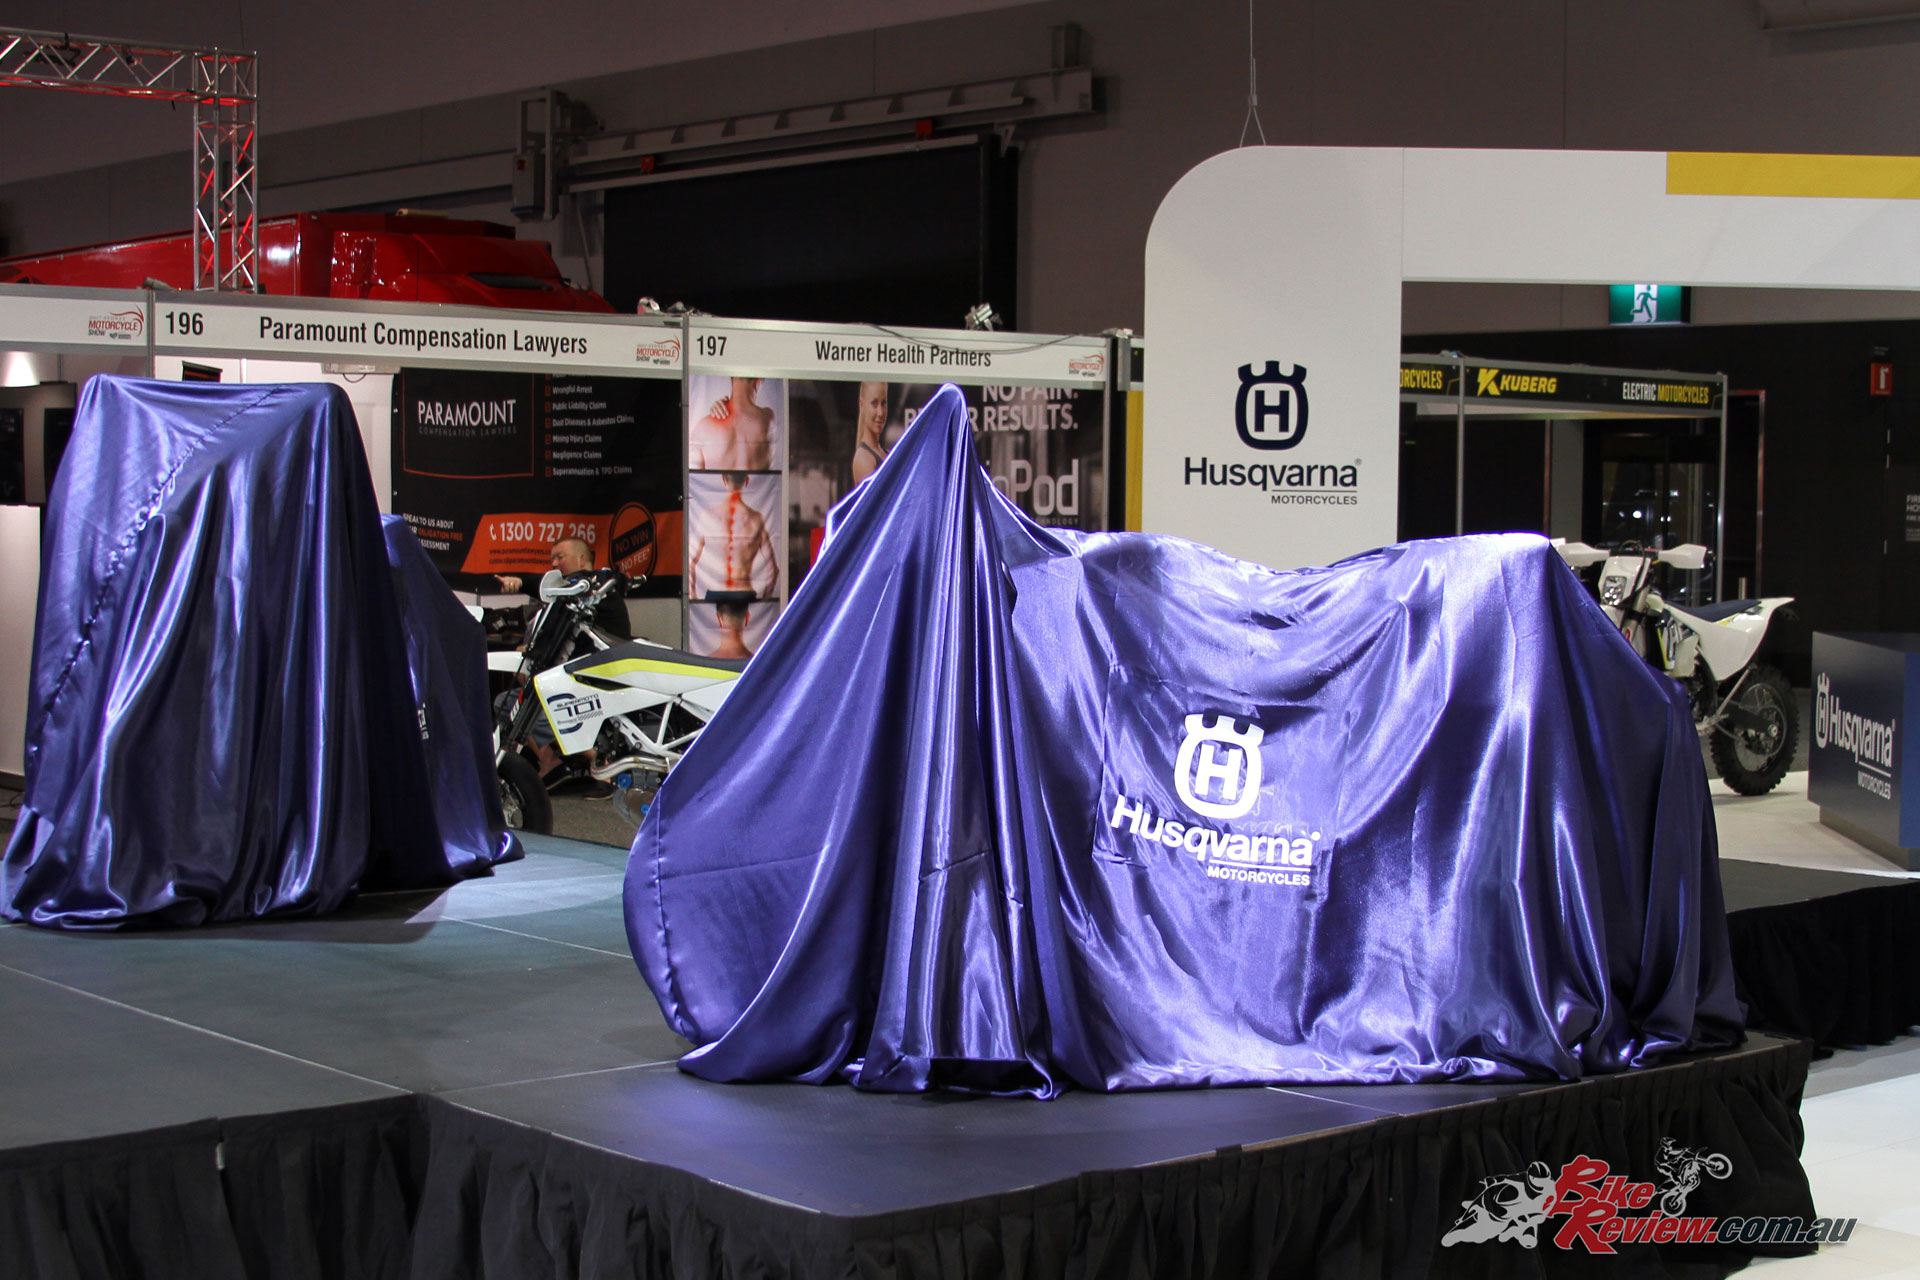 Husqvarna introduced their exciting new road offerings - Look familiar? They were shown as prototypes at EICMA last year